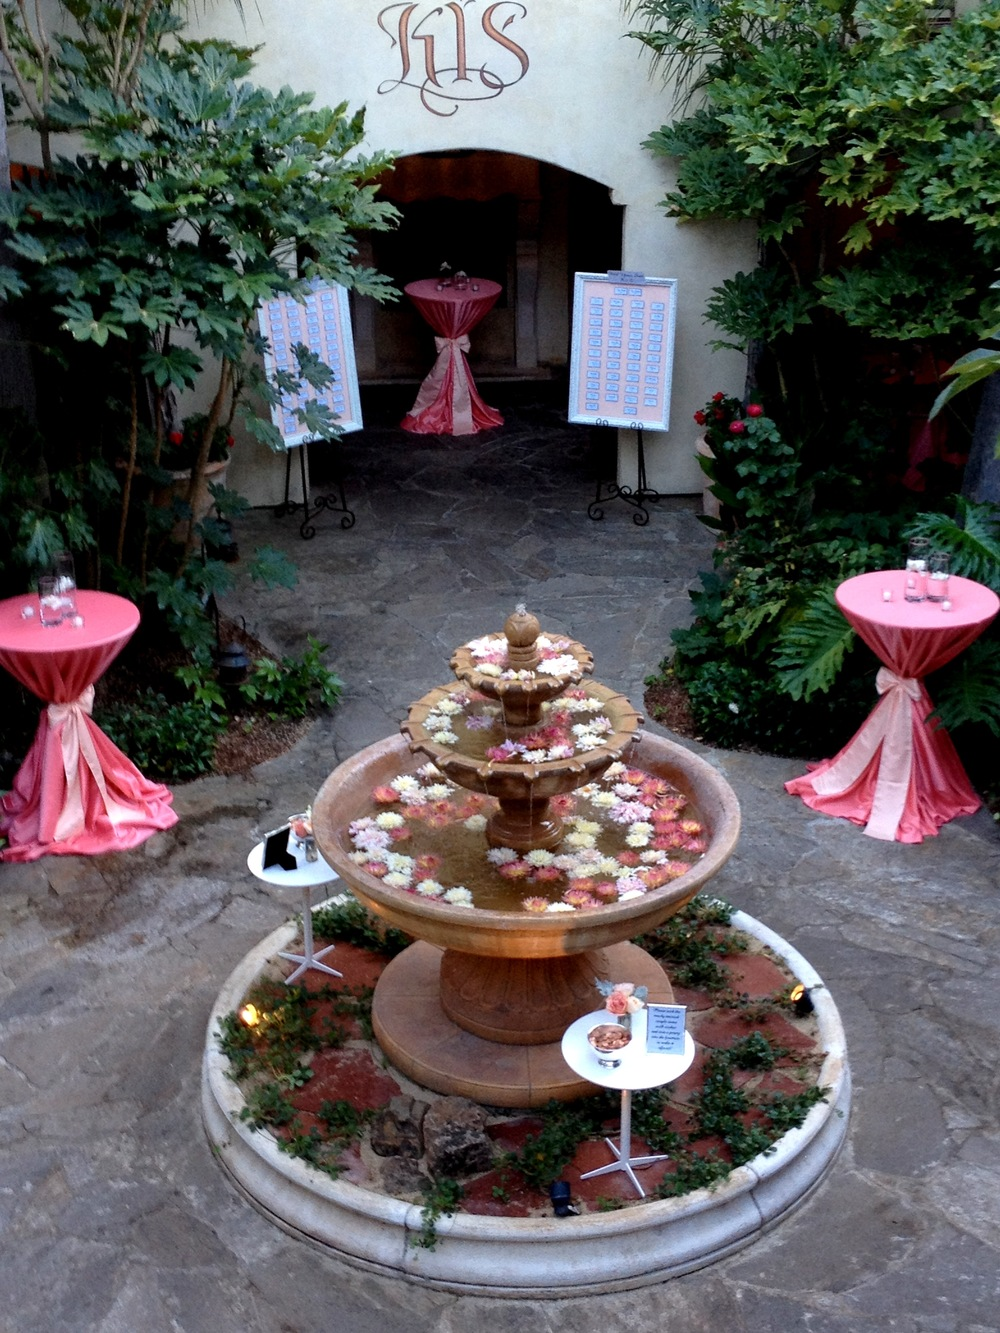 46. LS - RS - Wedding wishing well, summer wedding, floating flowers, peach & coral wedding, pretty cocktail linens, cocktail hour ideas.jpg